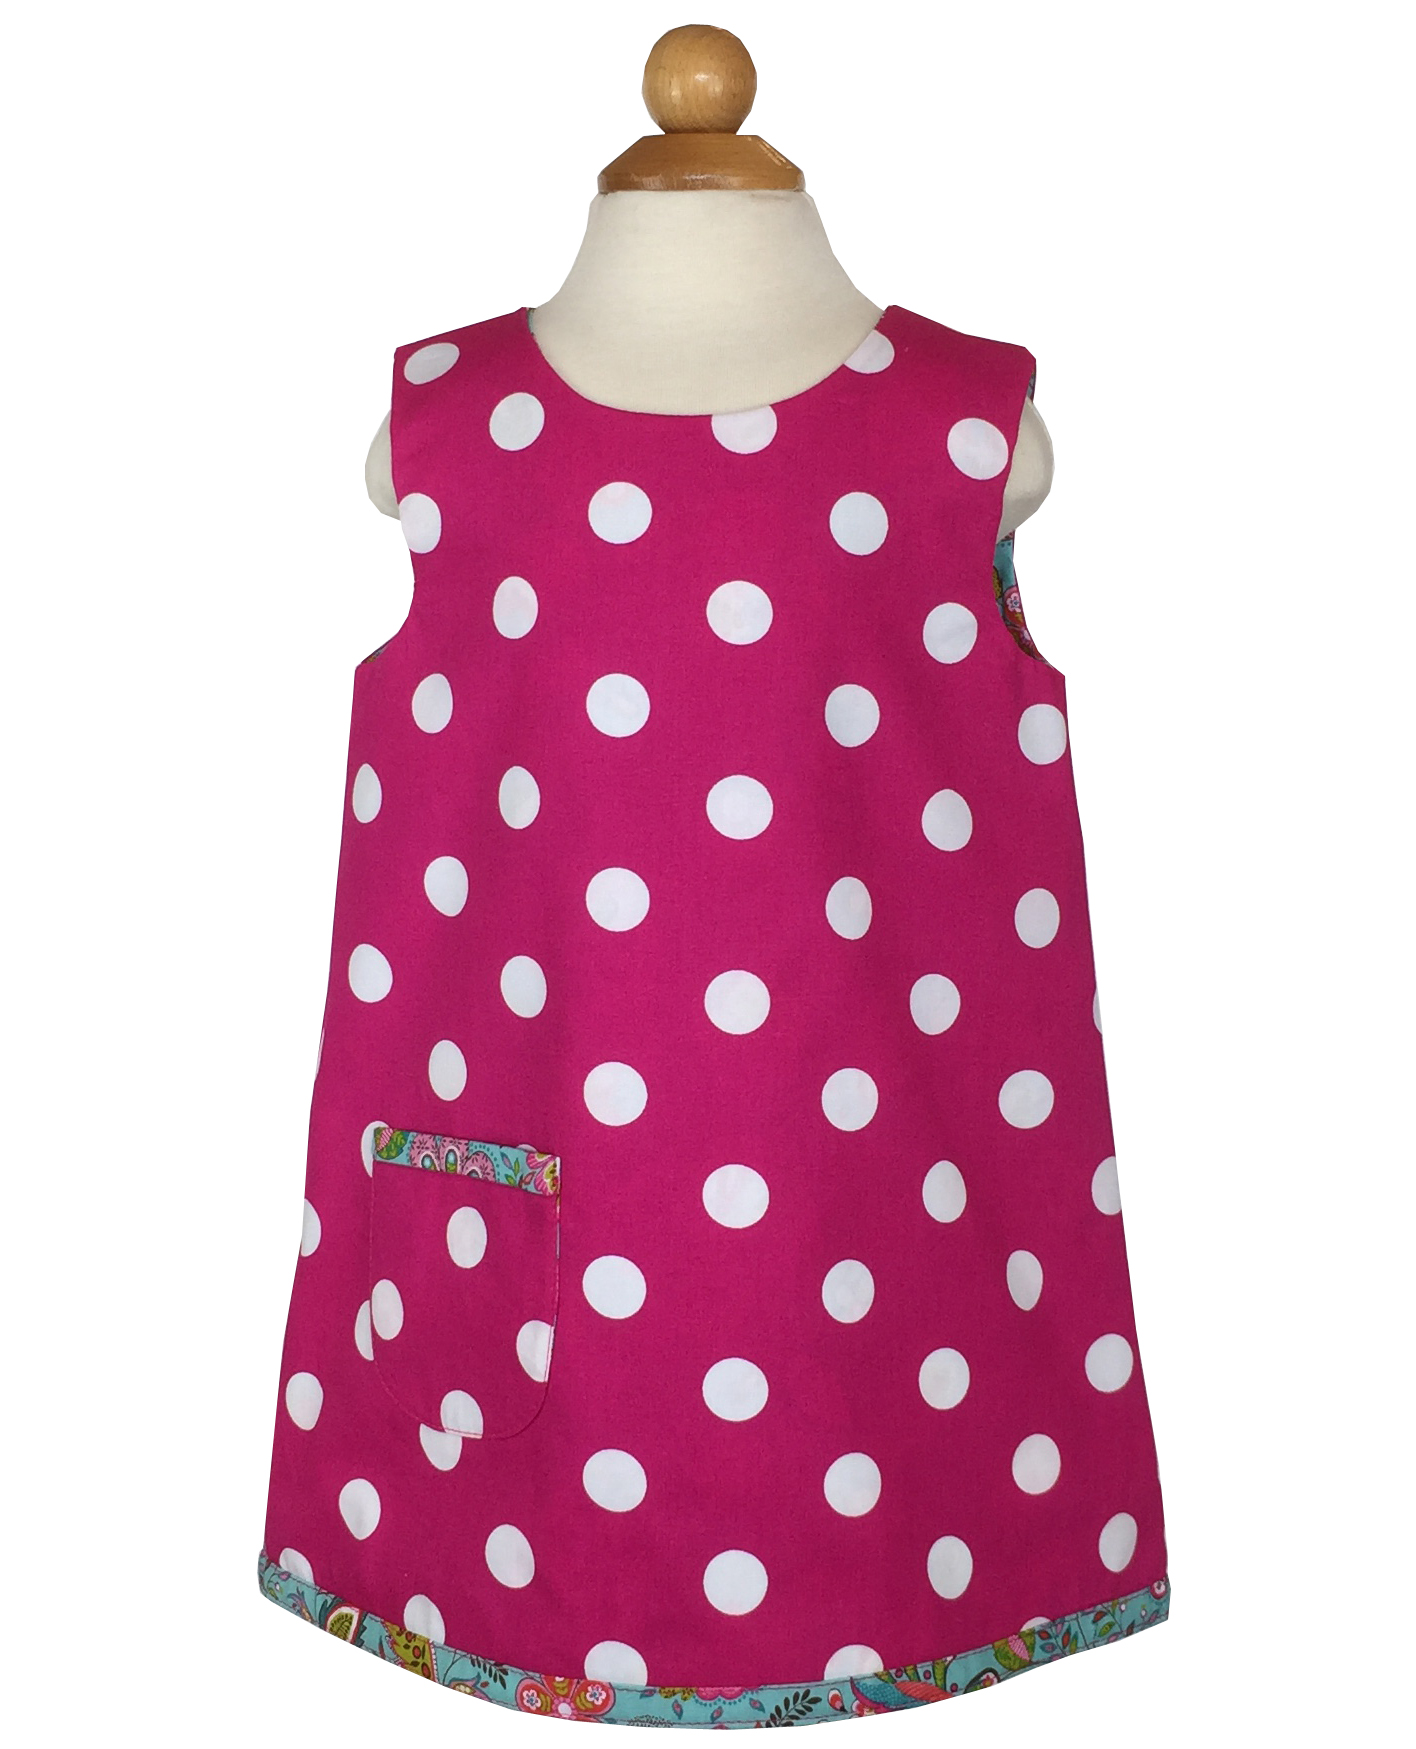 Reversible Pink Polka Dot Dress